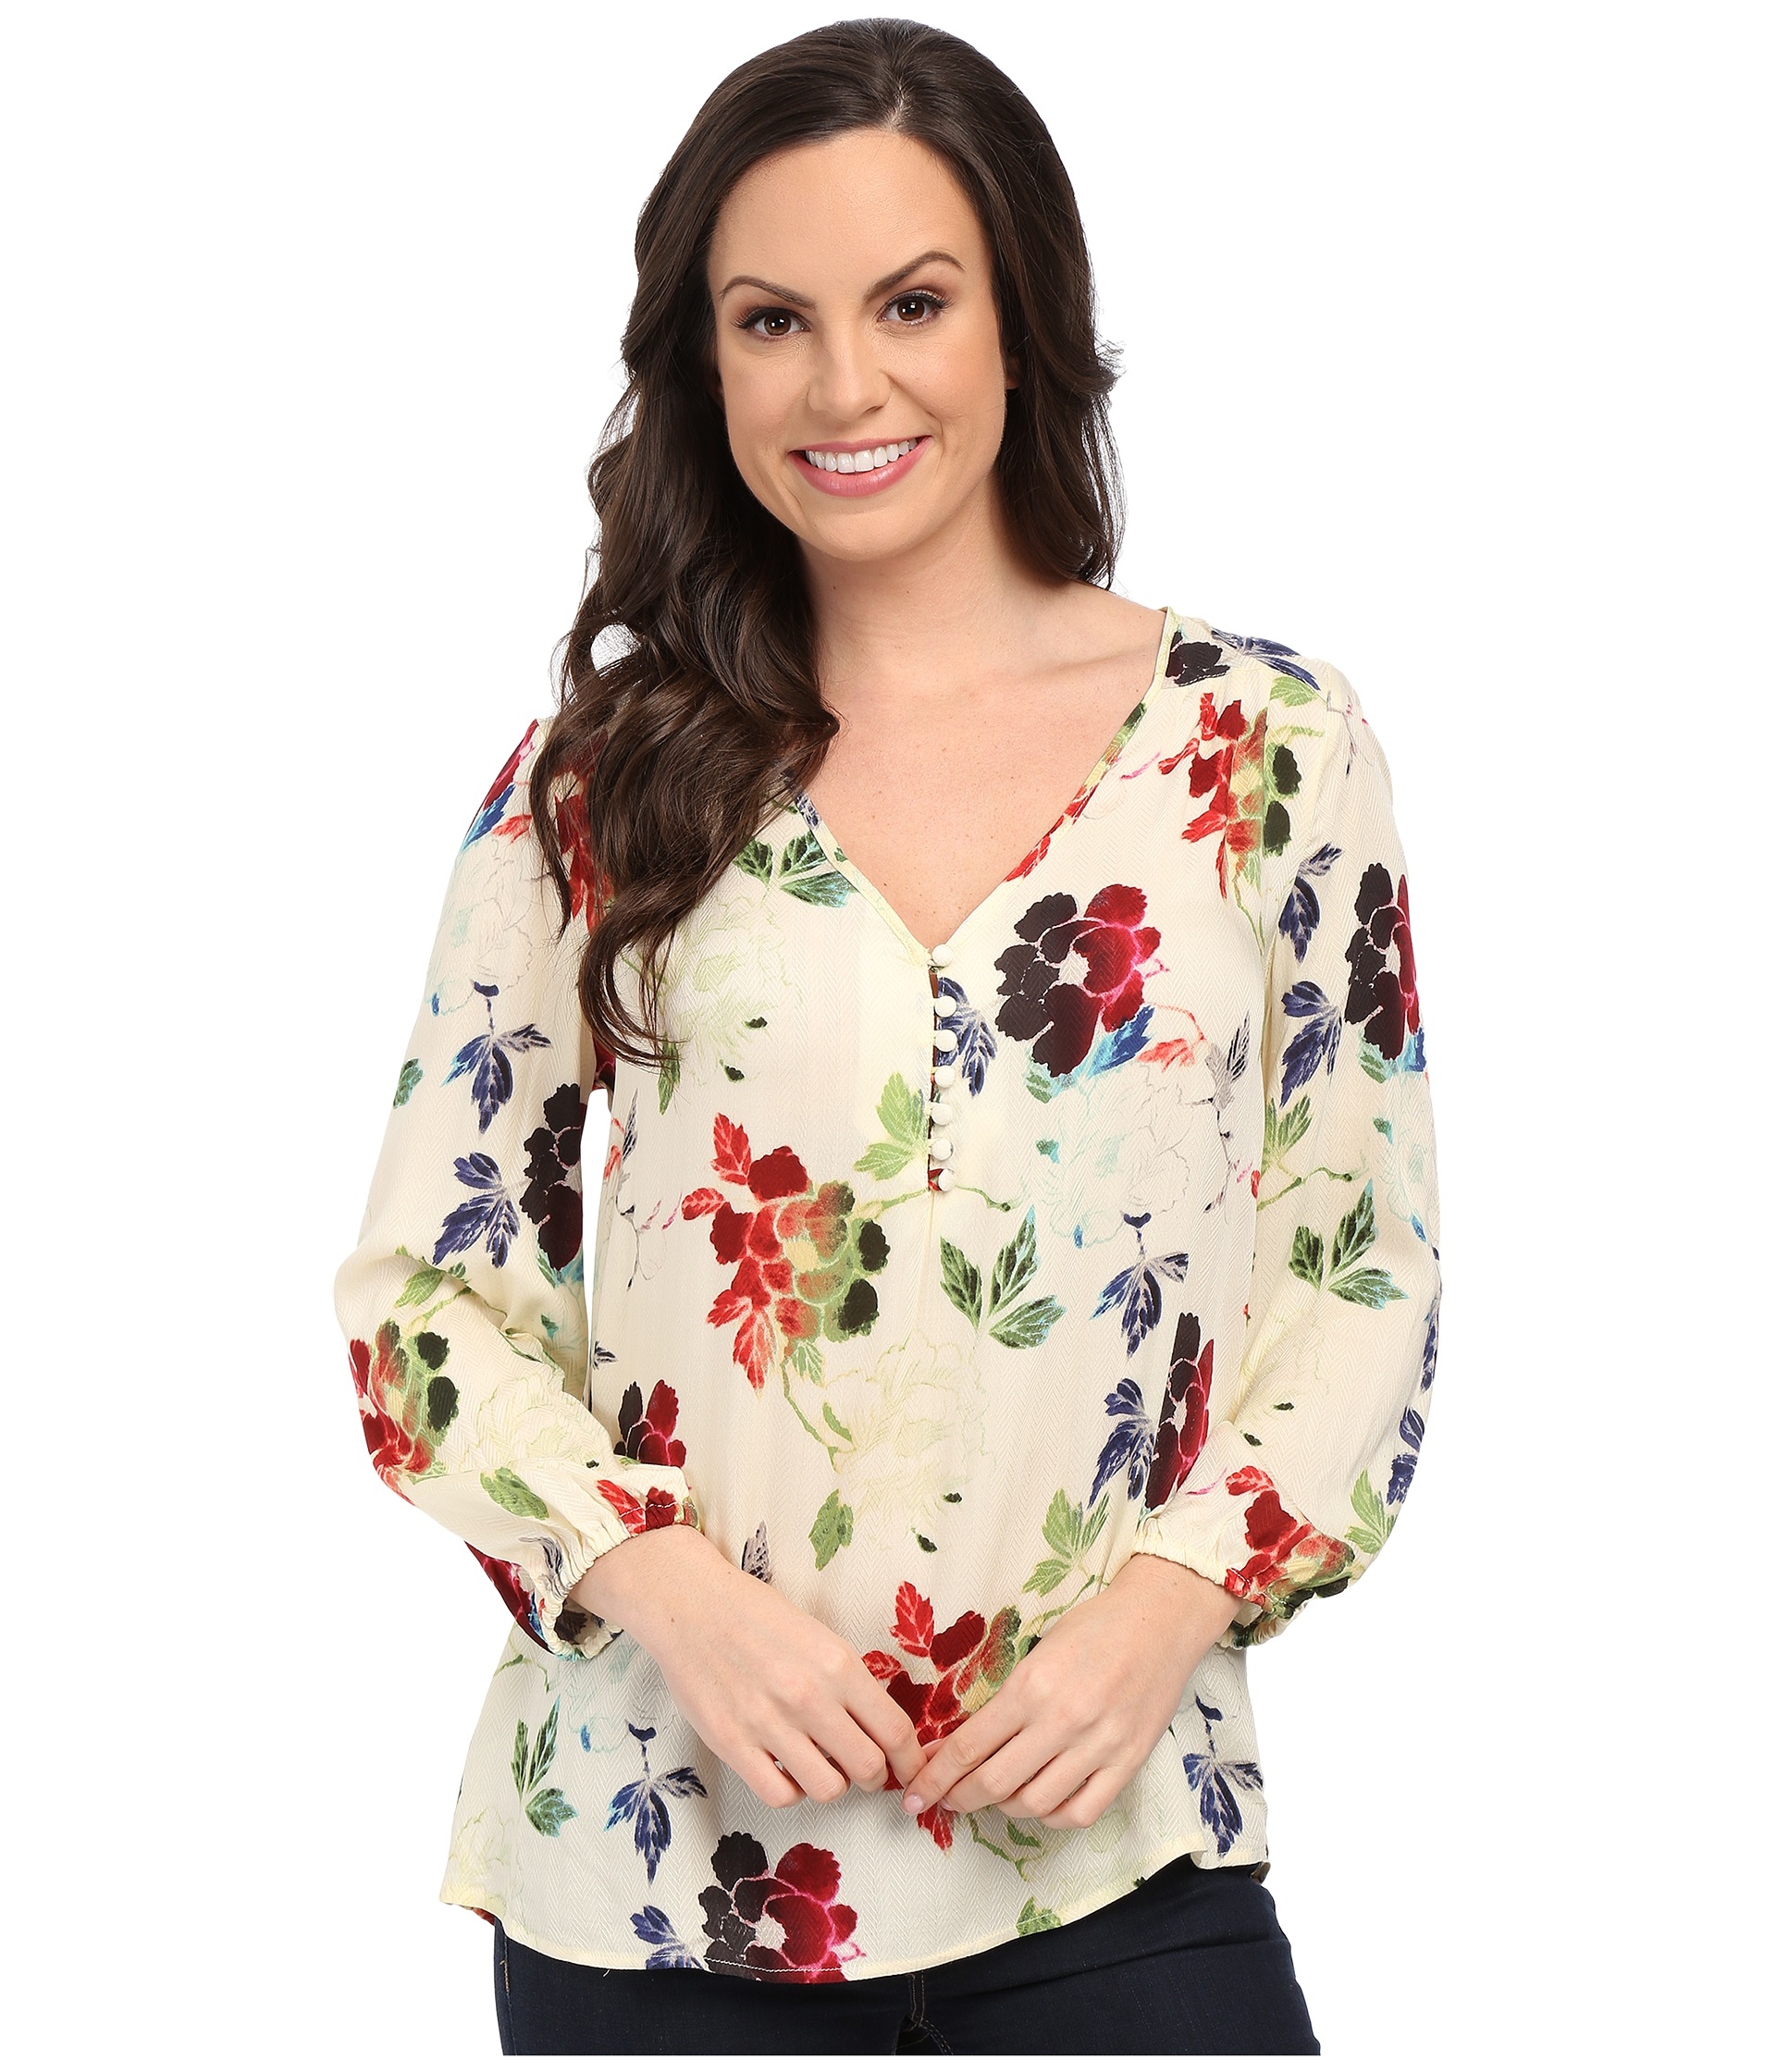 d71d655047854 Lyst - Stetson Textured Floral Print Rayon Blouse in White